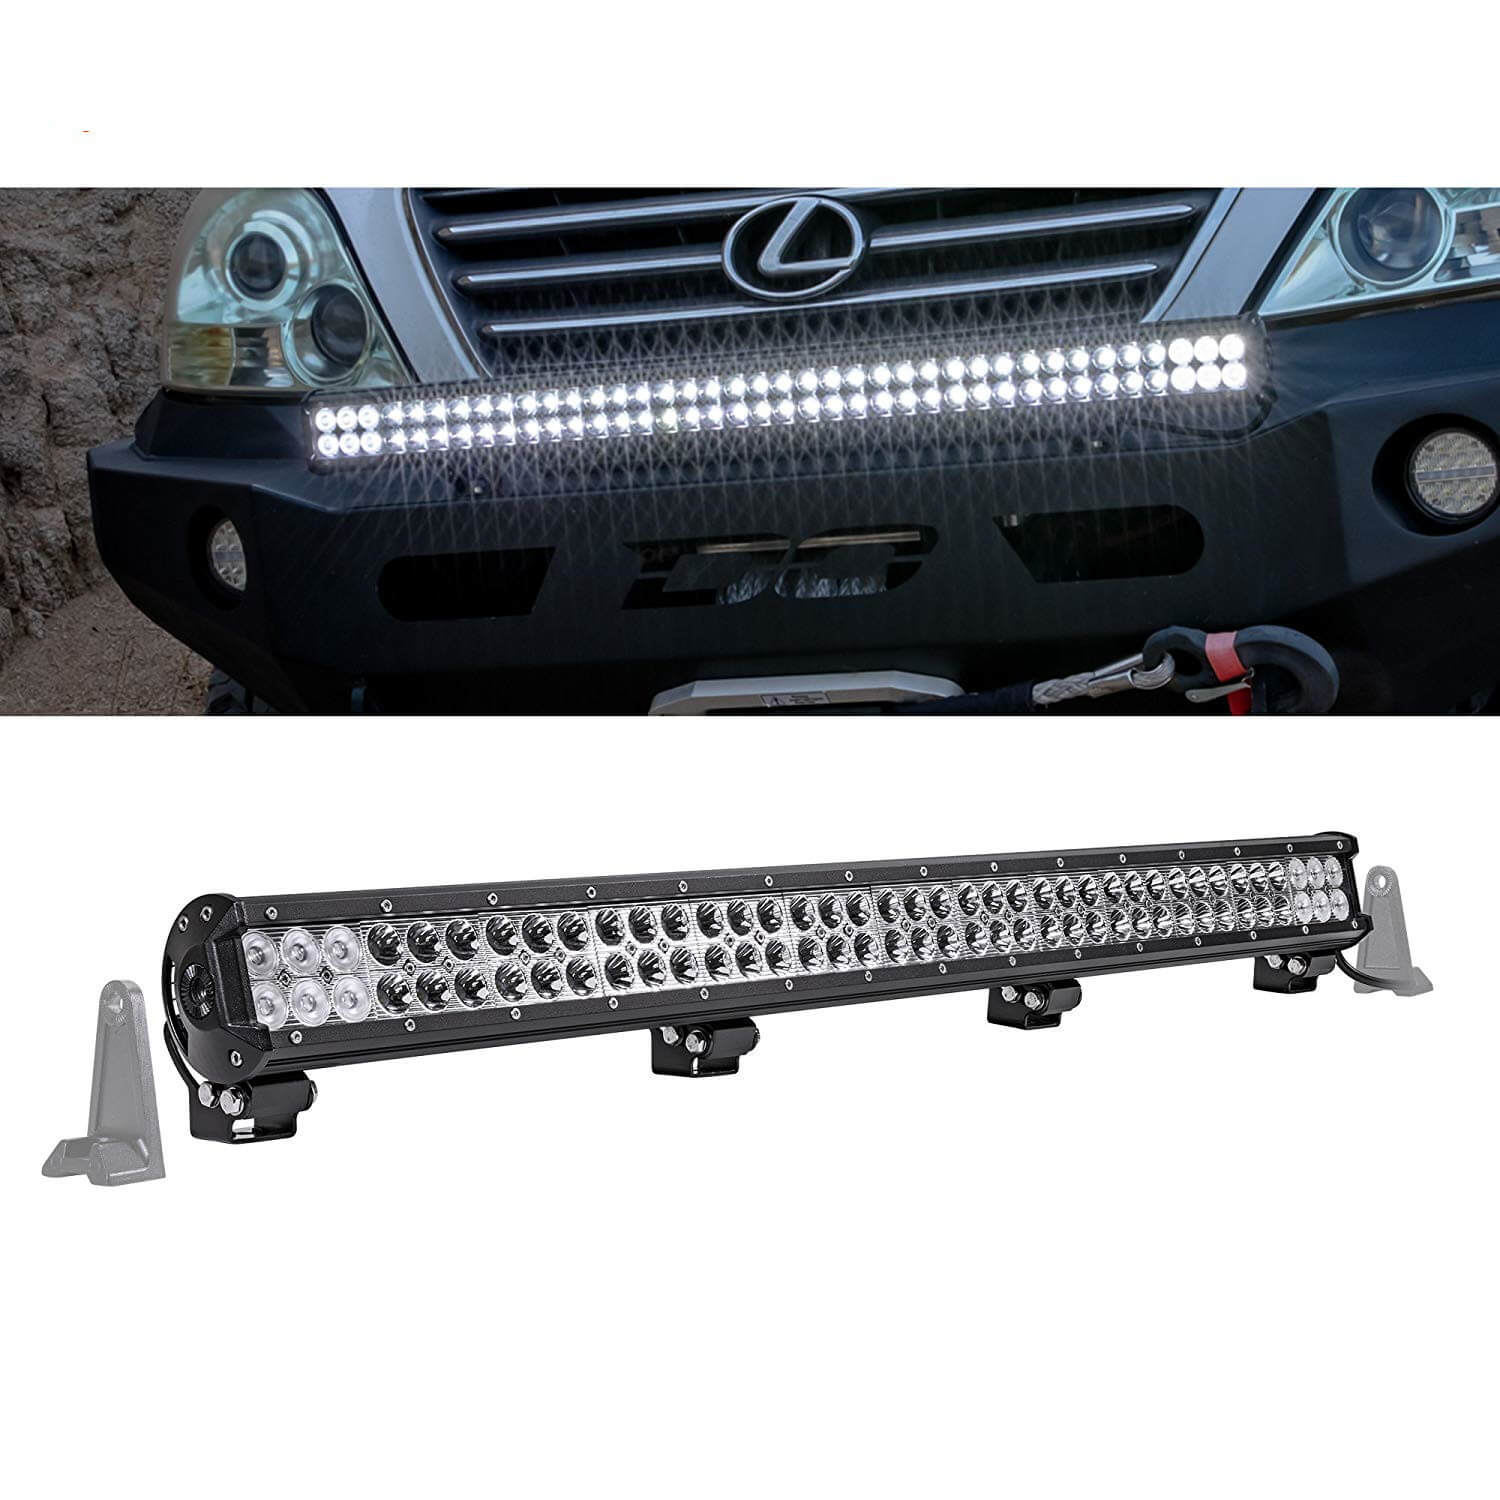 Nilight-LED-BAR Top 9 Best LED Light Bar Reviews in 2019